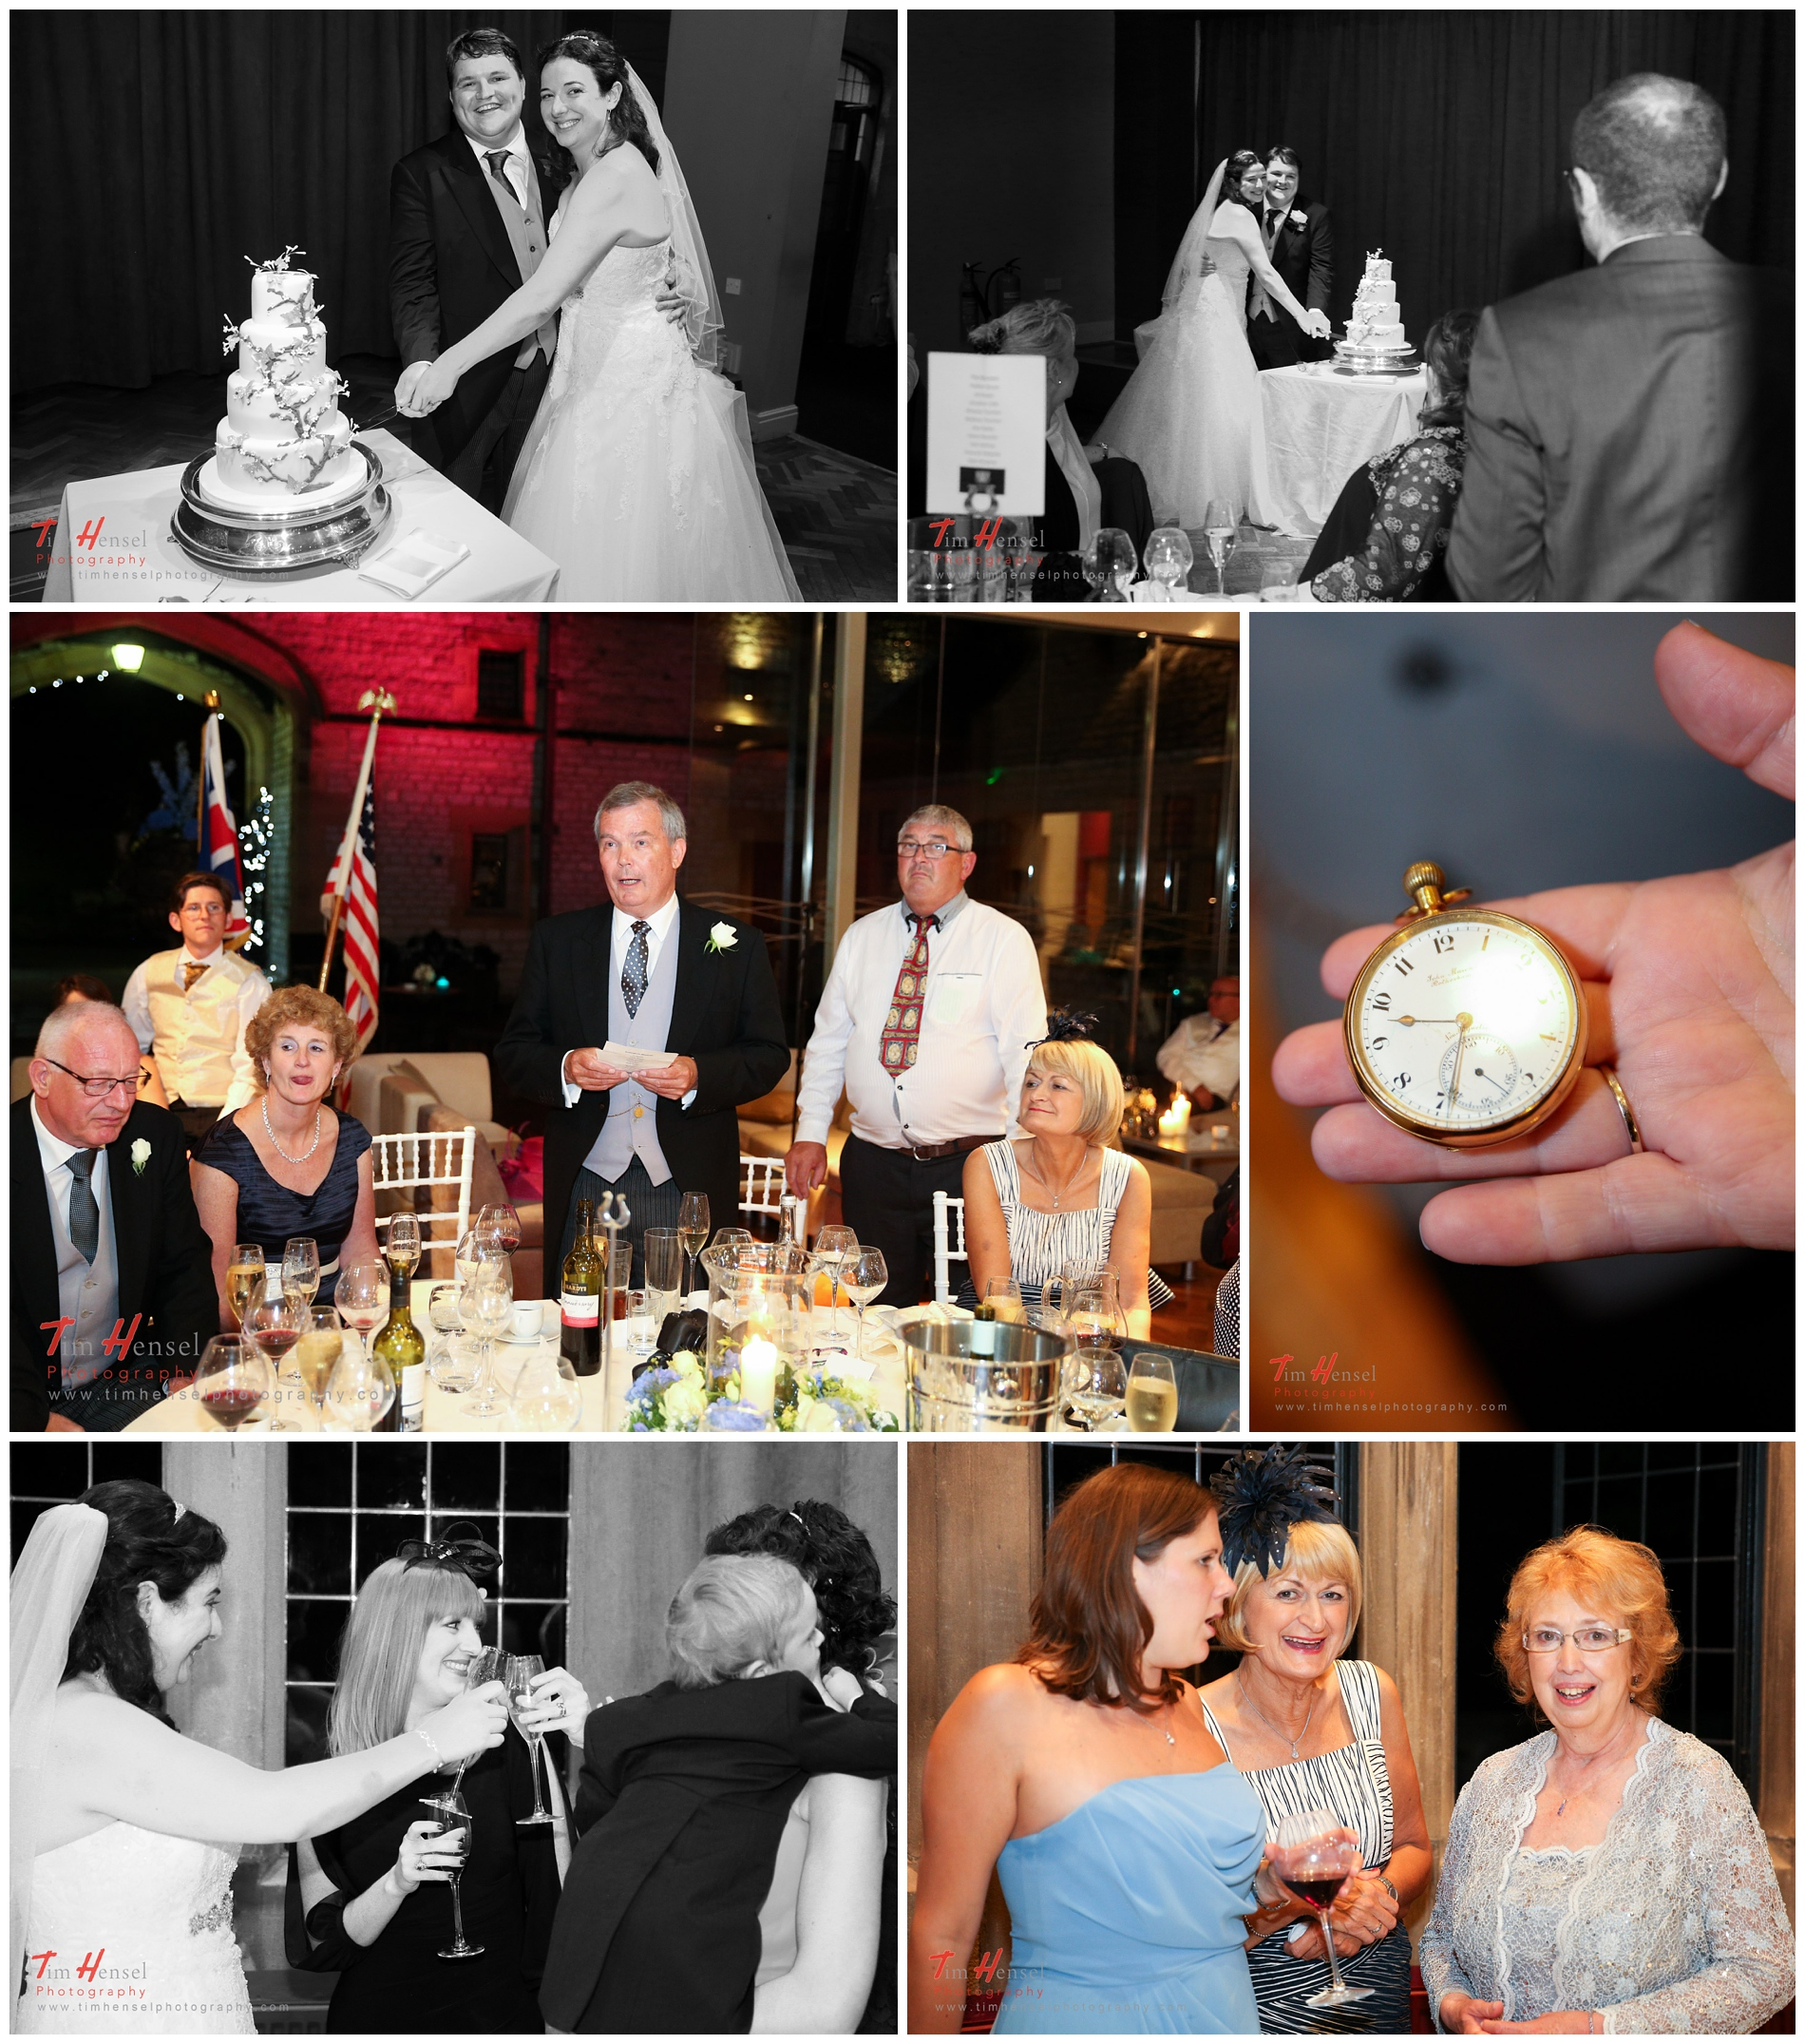 Wedding cake, watch, drinks and partying at thornbridge hall